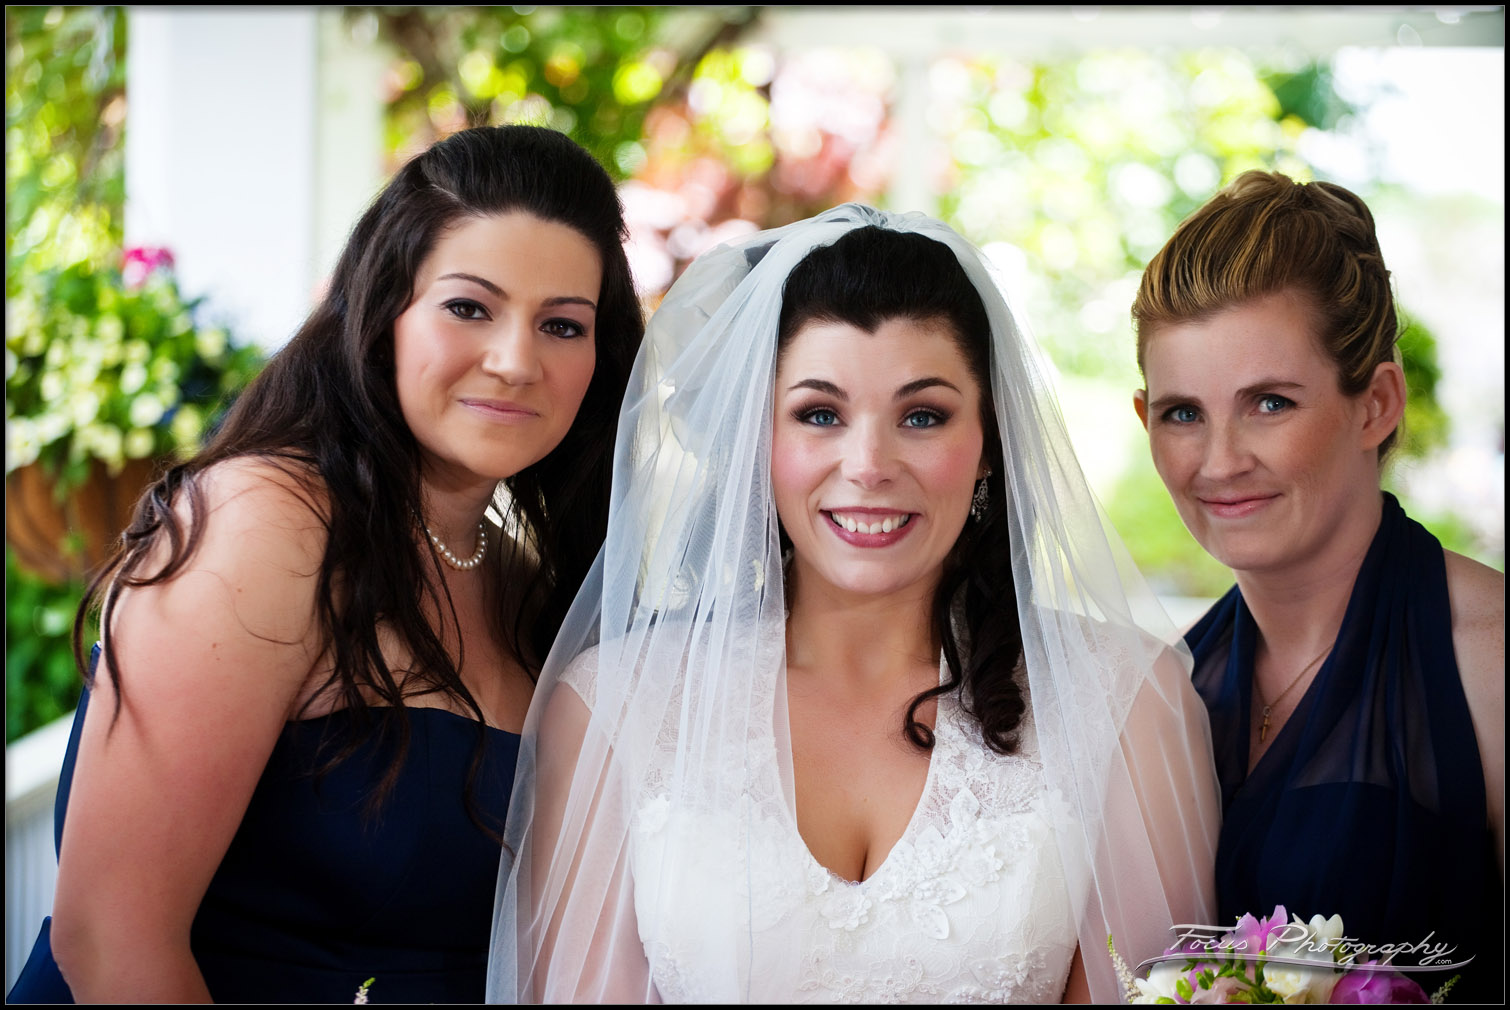 The two maids of honor with the bride